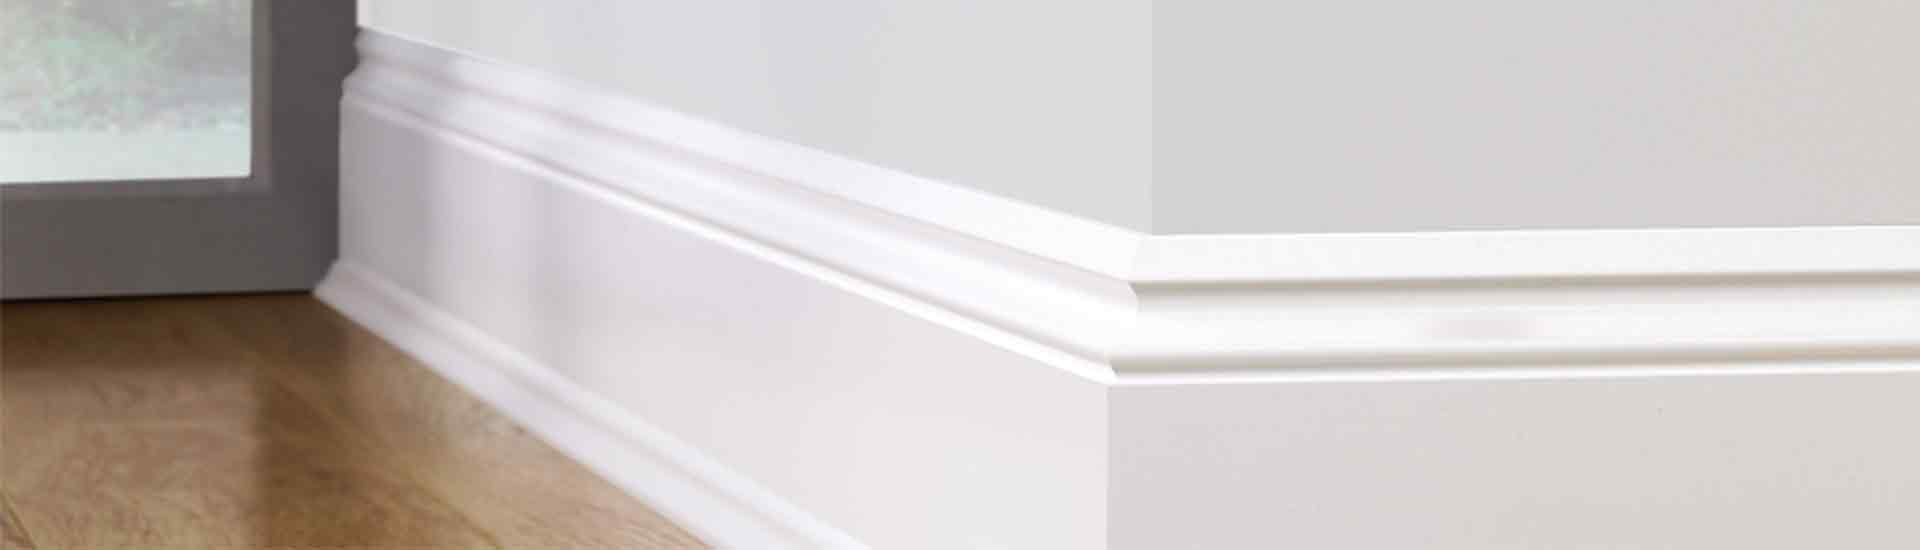 Shop Skirting Boards Now